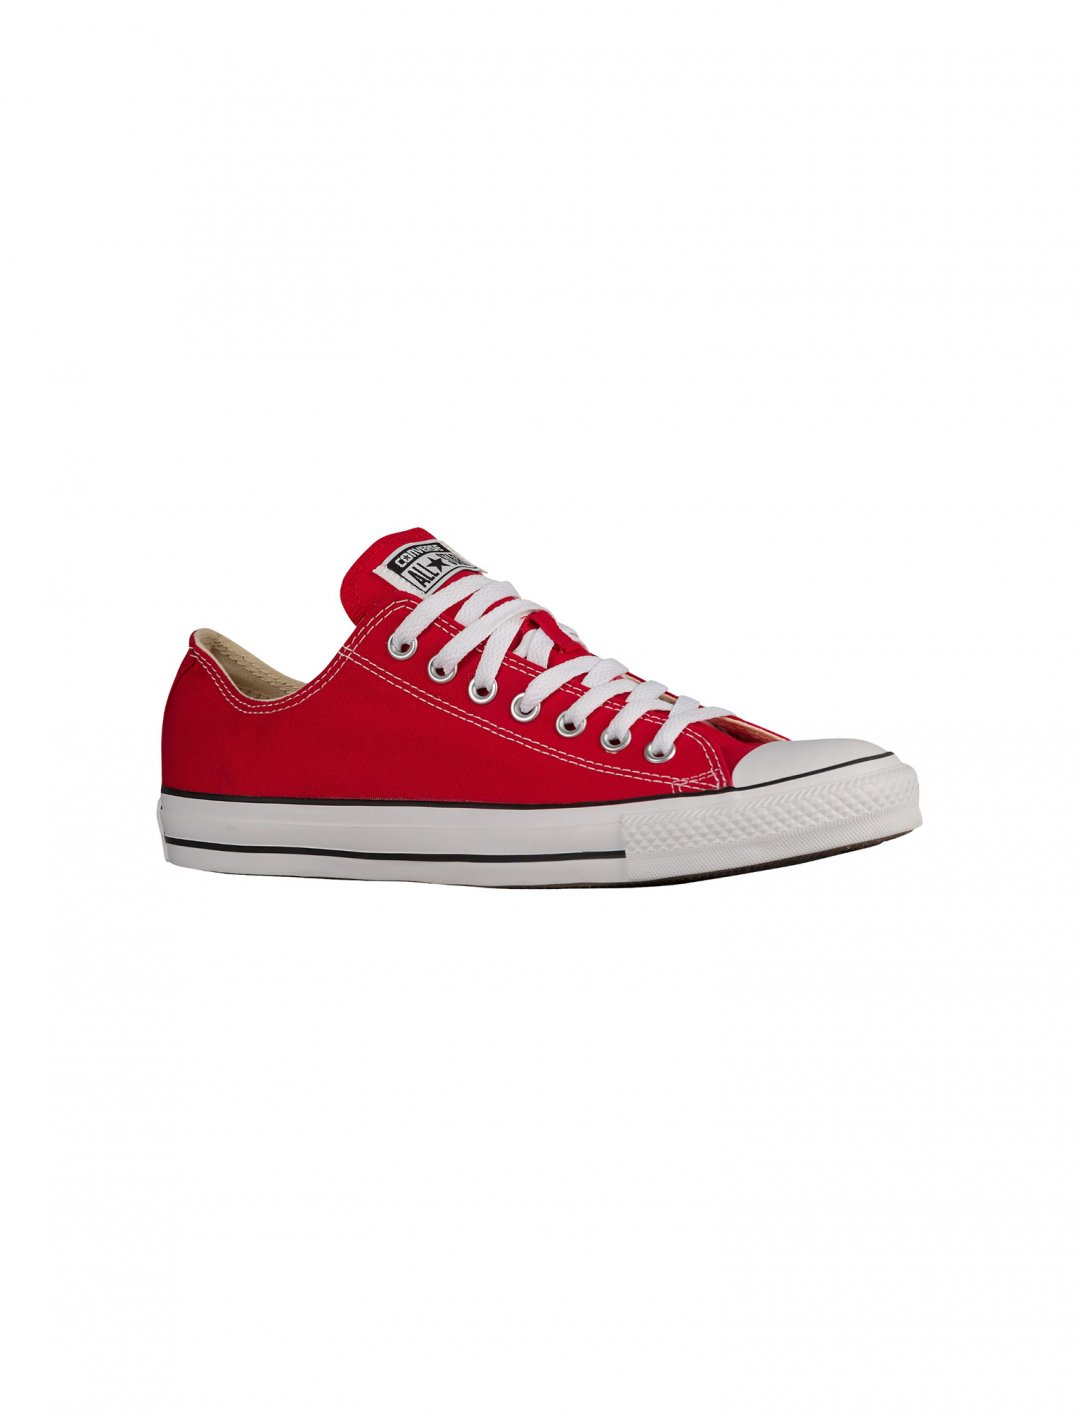 """Converse All Star Ox Plimsolls {""""id"""":12,""""product_section_id"""":1,""""name"""":""""Shoes"""",""""order"""":12} Converse"""